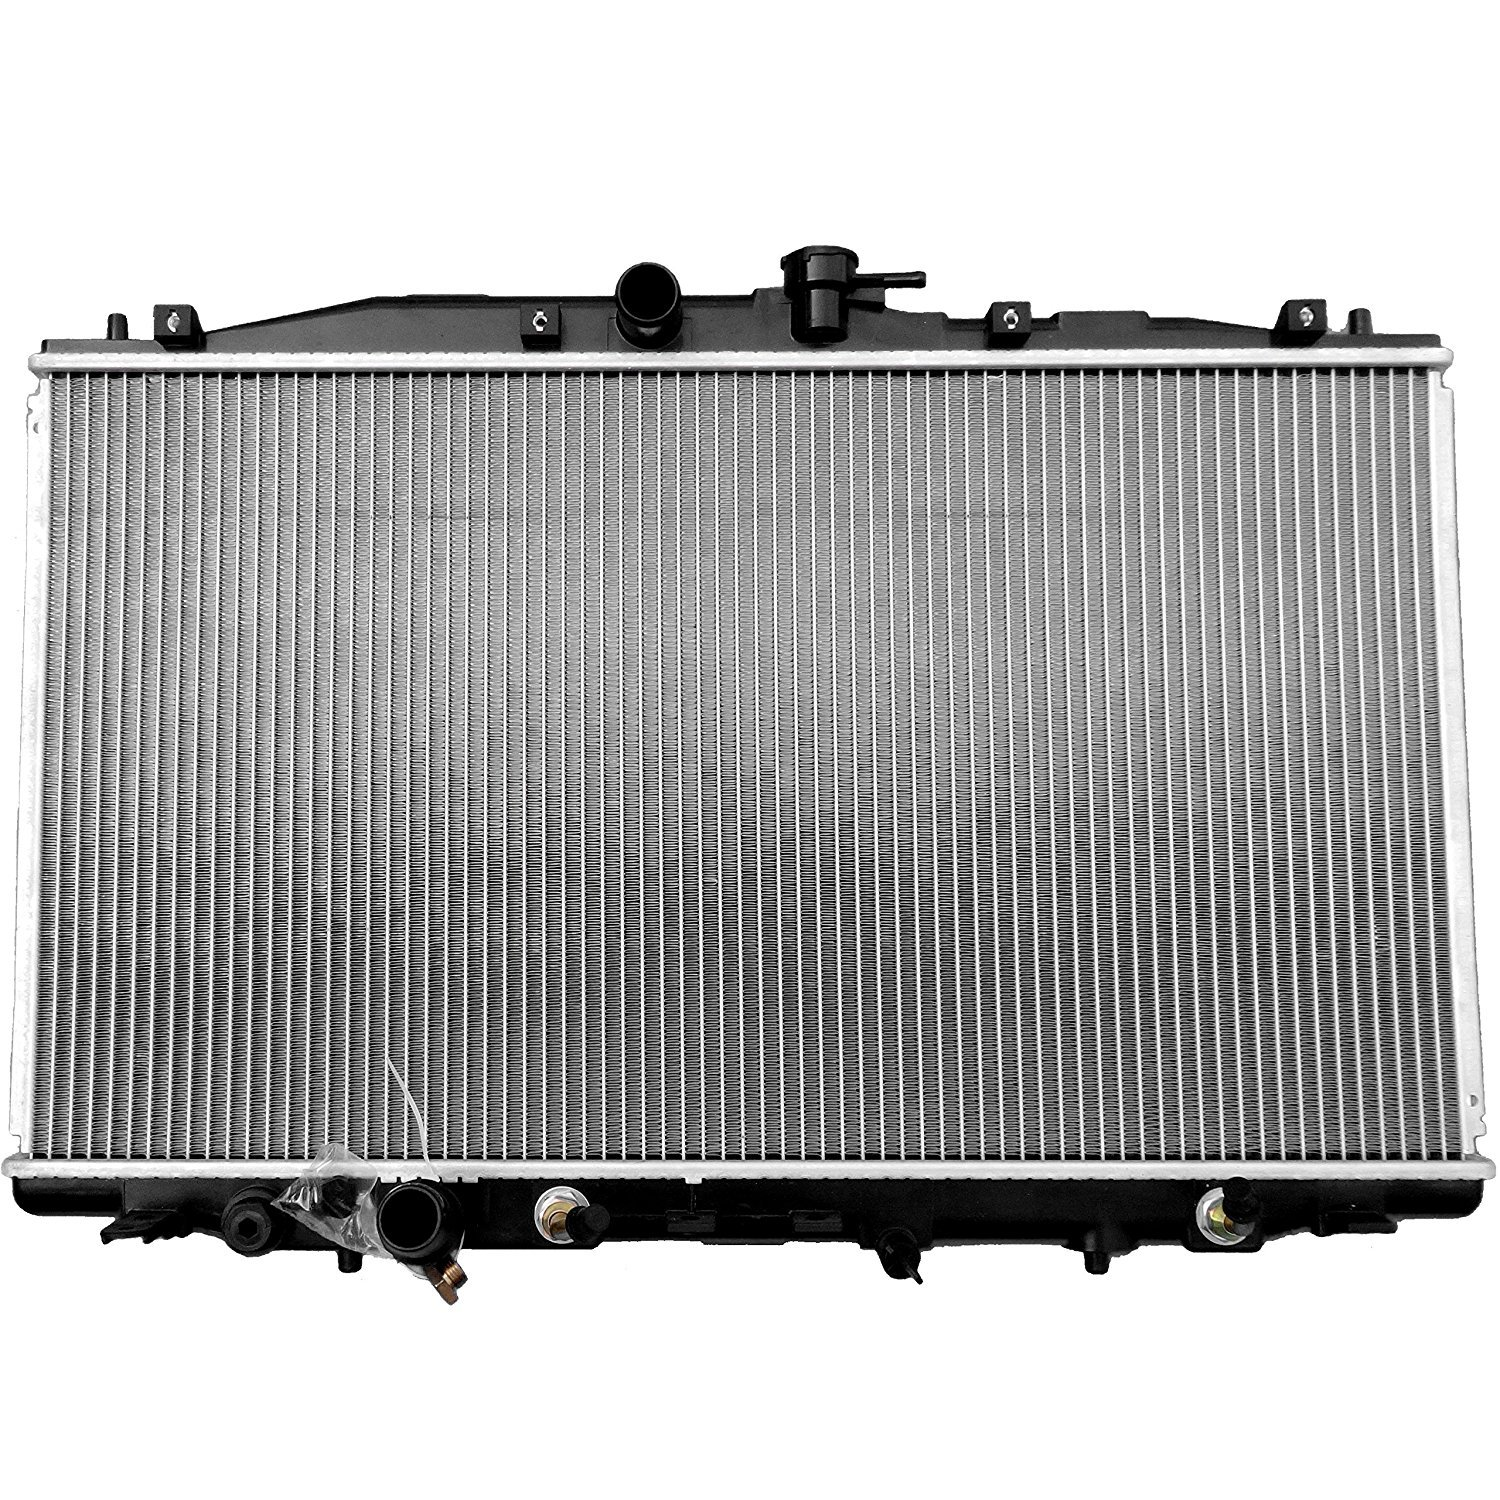 ECCPP Radiator LR2680 for 2004 2005 Acura TSX Base Sedan 4-Door 2.4L 2354CC l4 GAS DOHC Naturally Aspirated